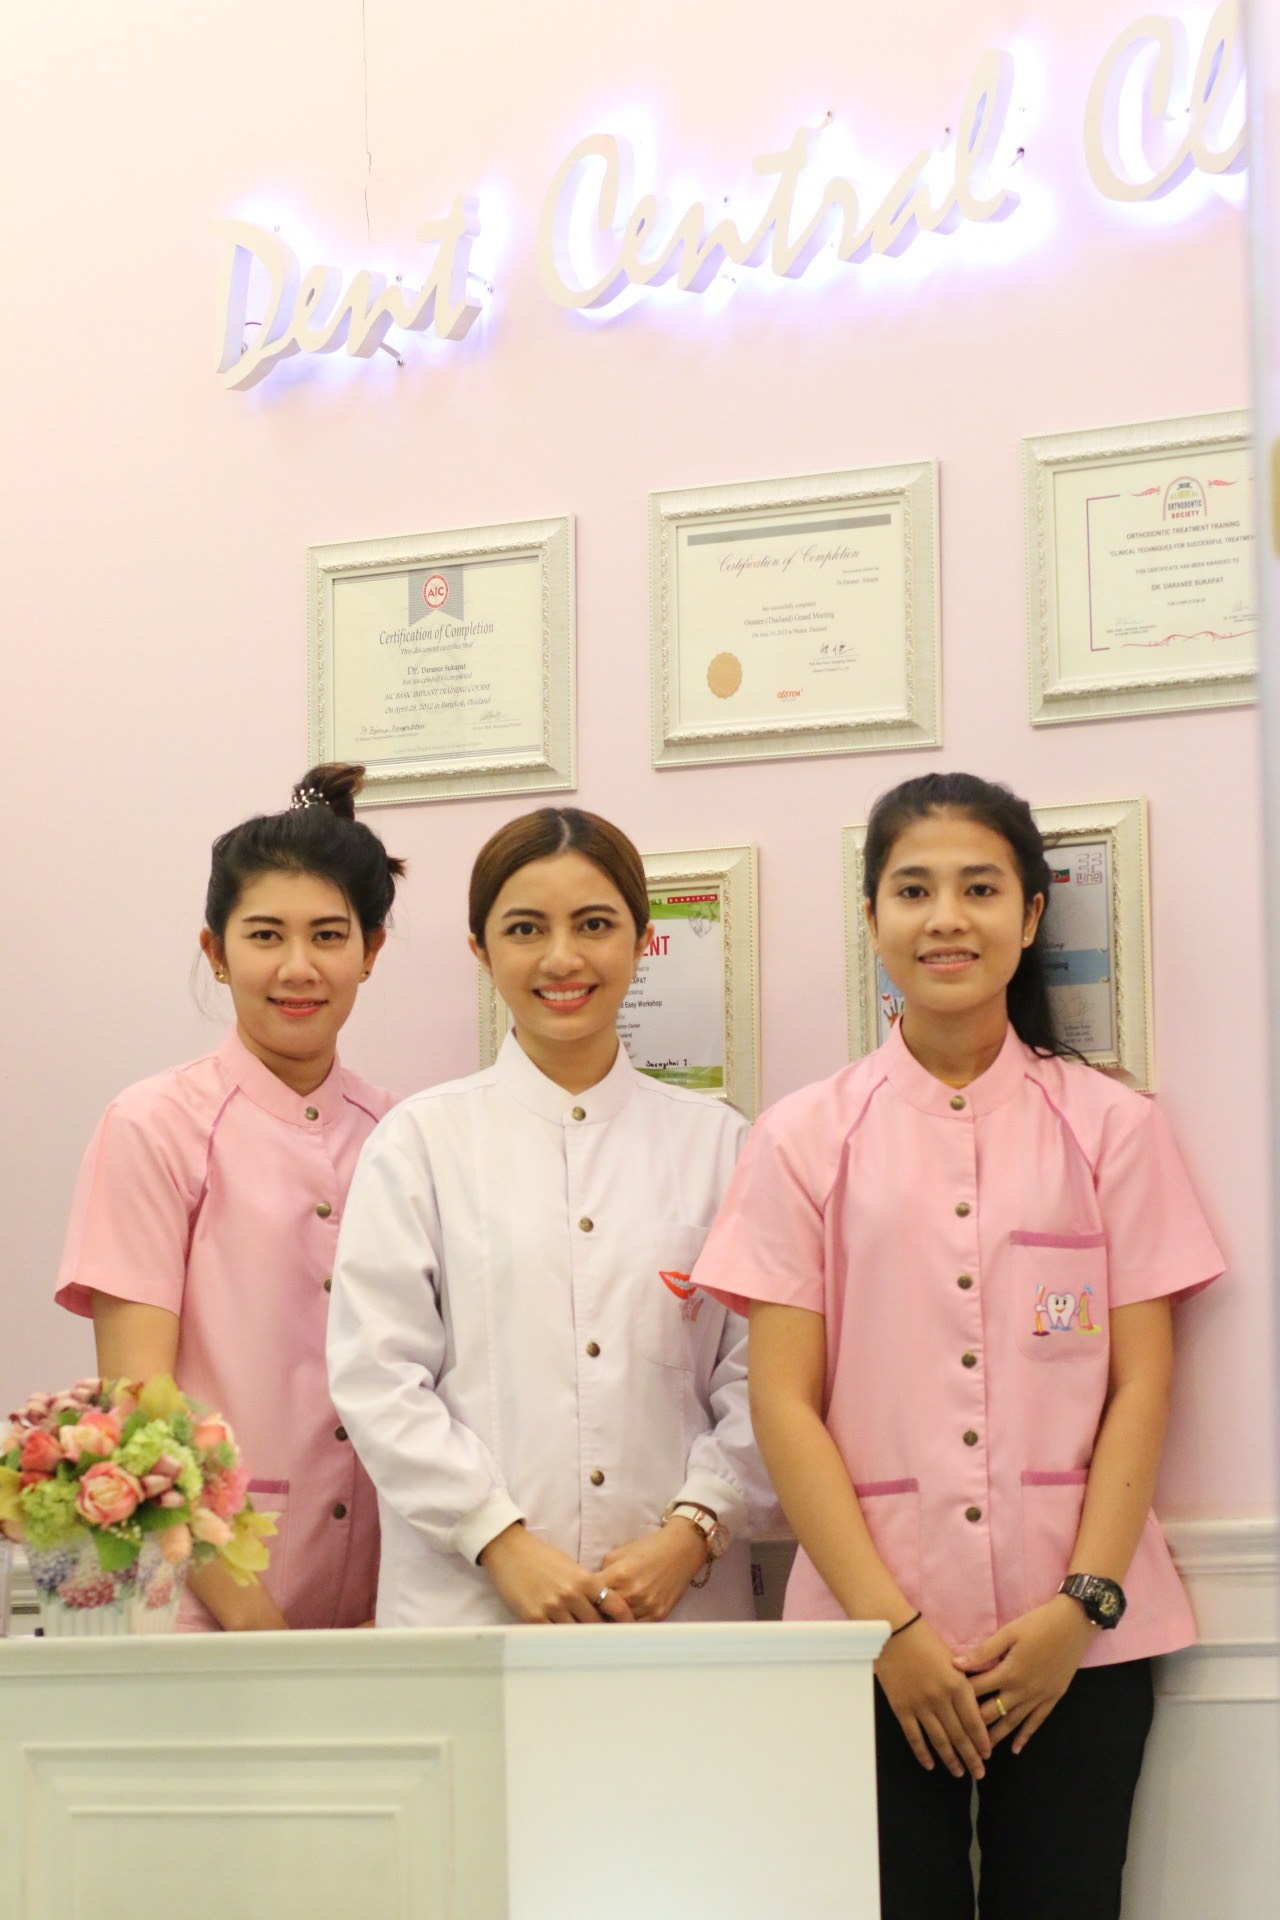 Dent Central Clinic